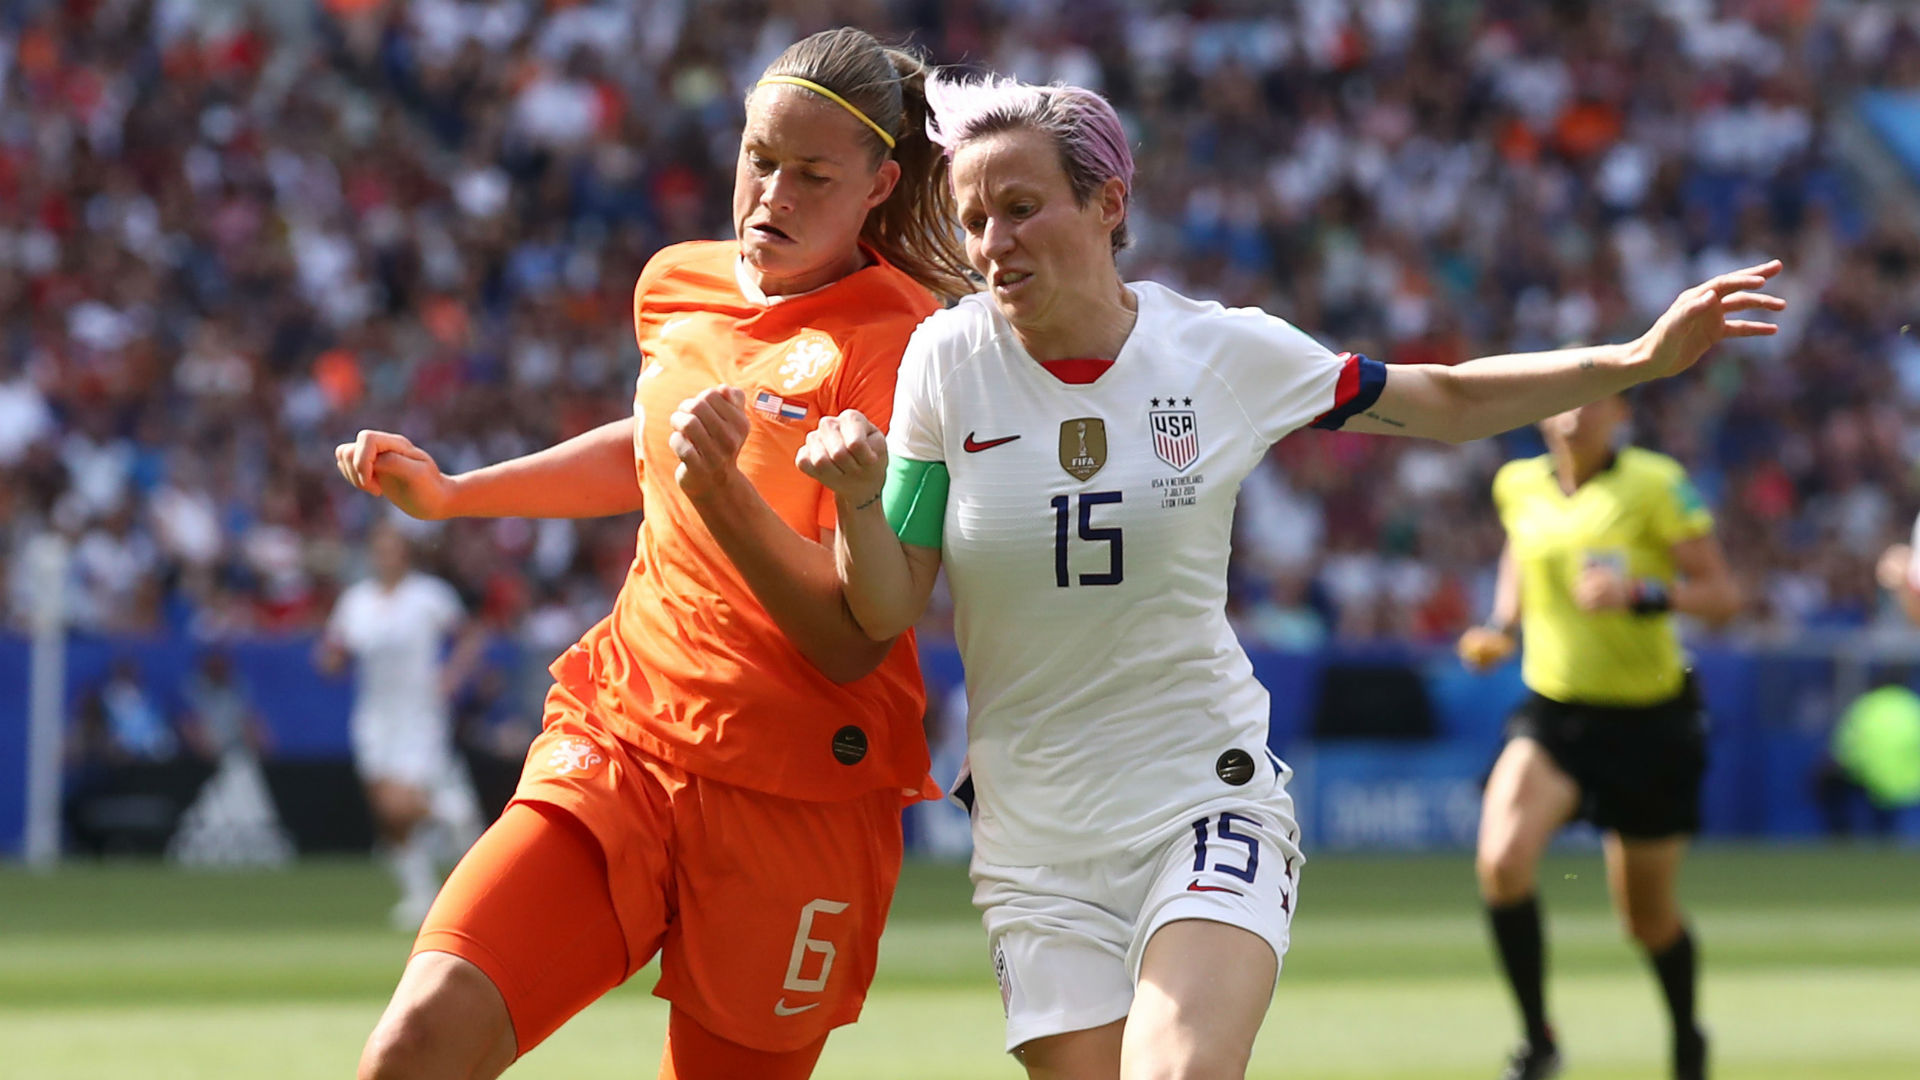 Amouk Dekker Megan Rapinoe USWNT Netherlands Women's World Cup 2019